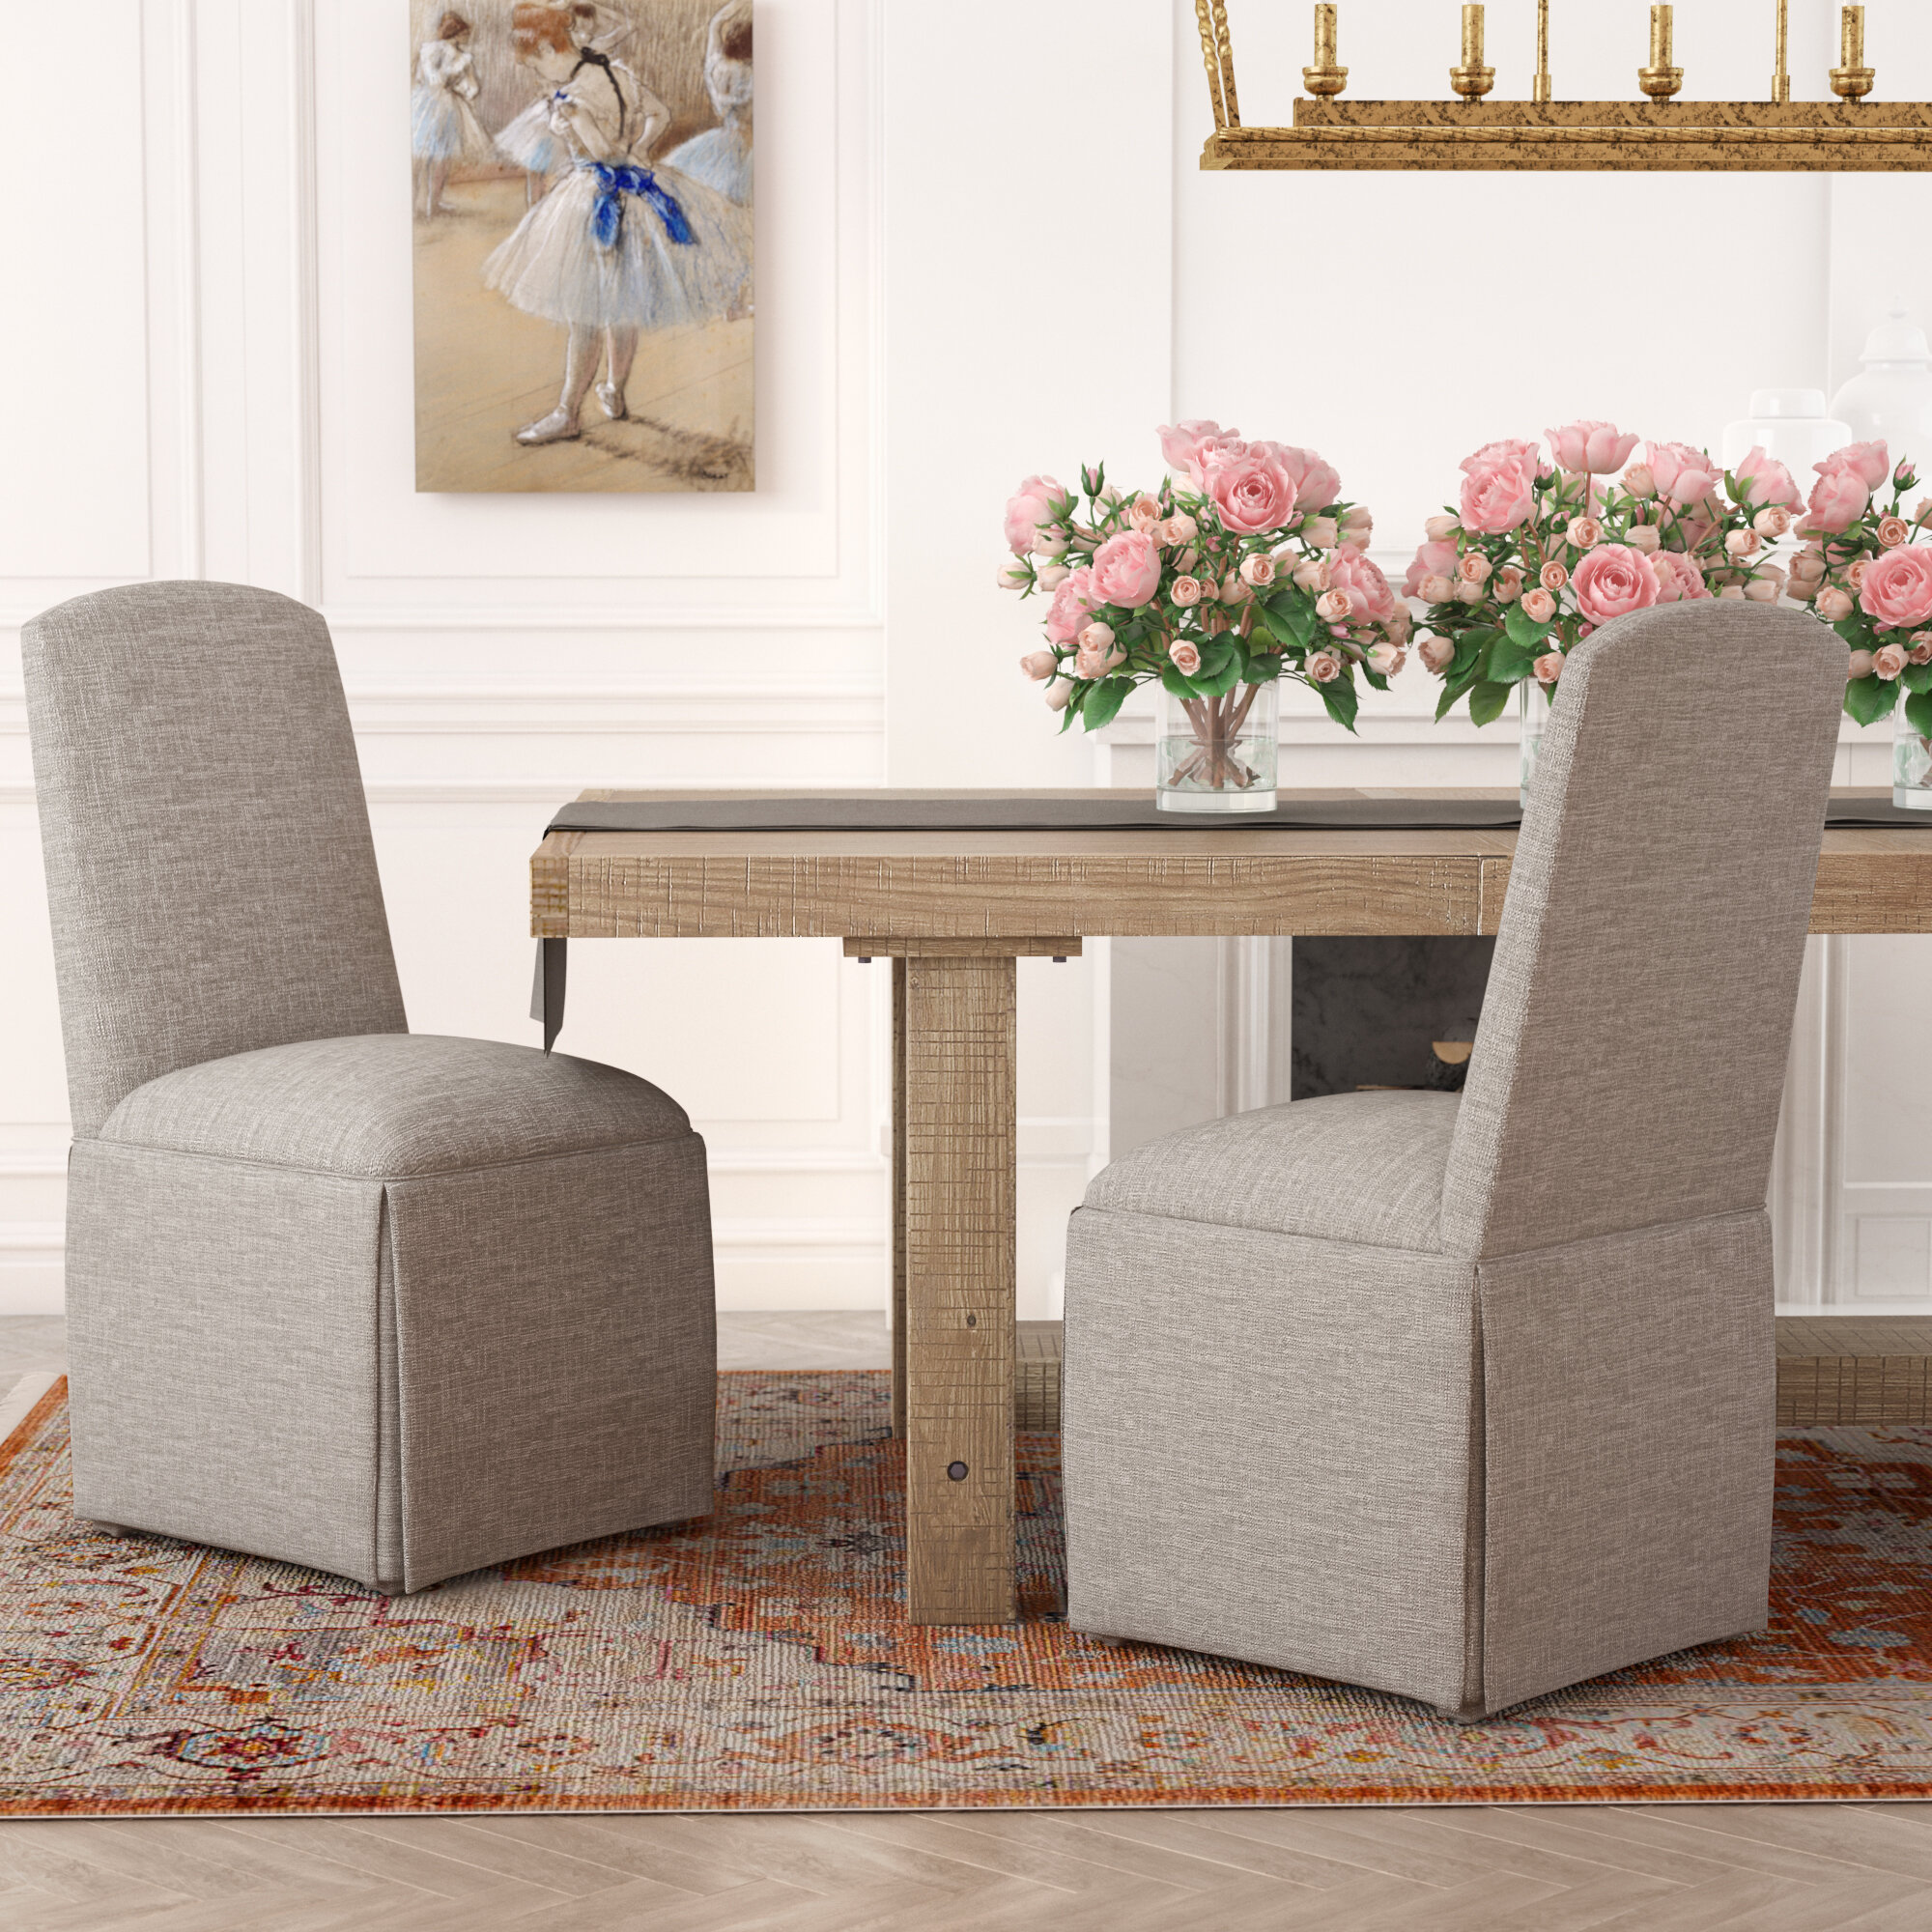 Darby Home Co Lamoille Traditional Skirted Upholstered